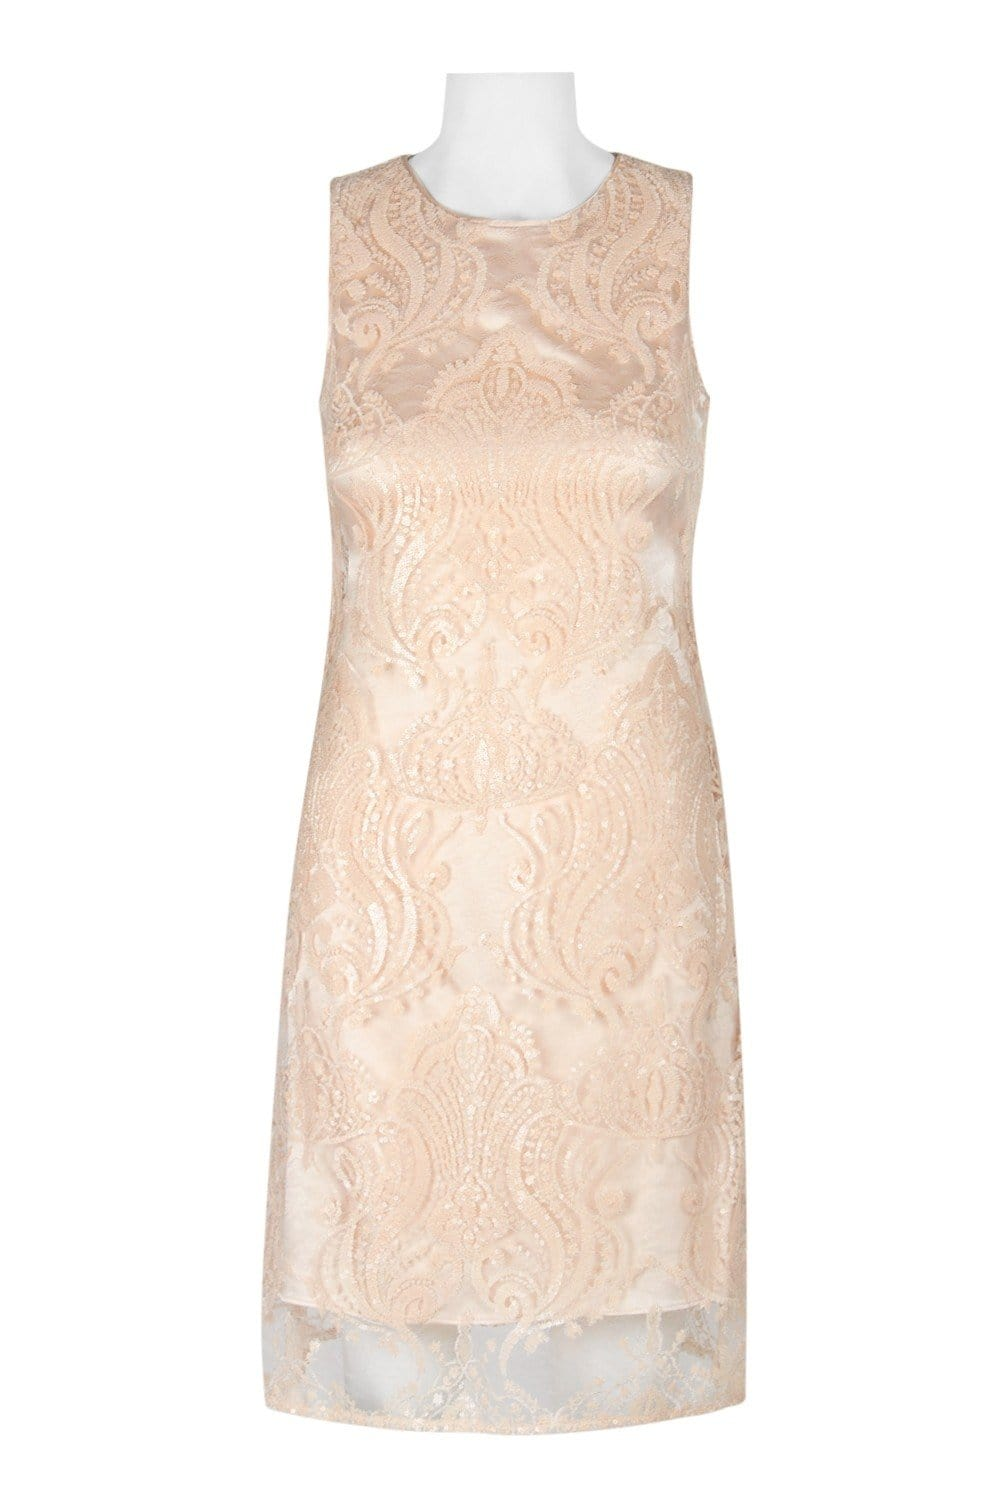 Taylor - 9734M Sequined Mesh Short Sheath Dress In Nude